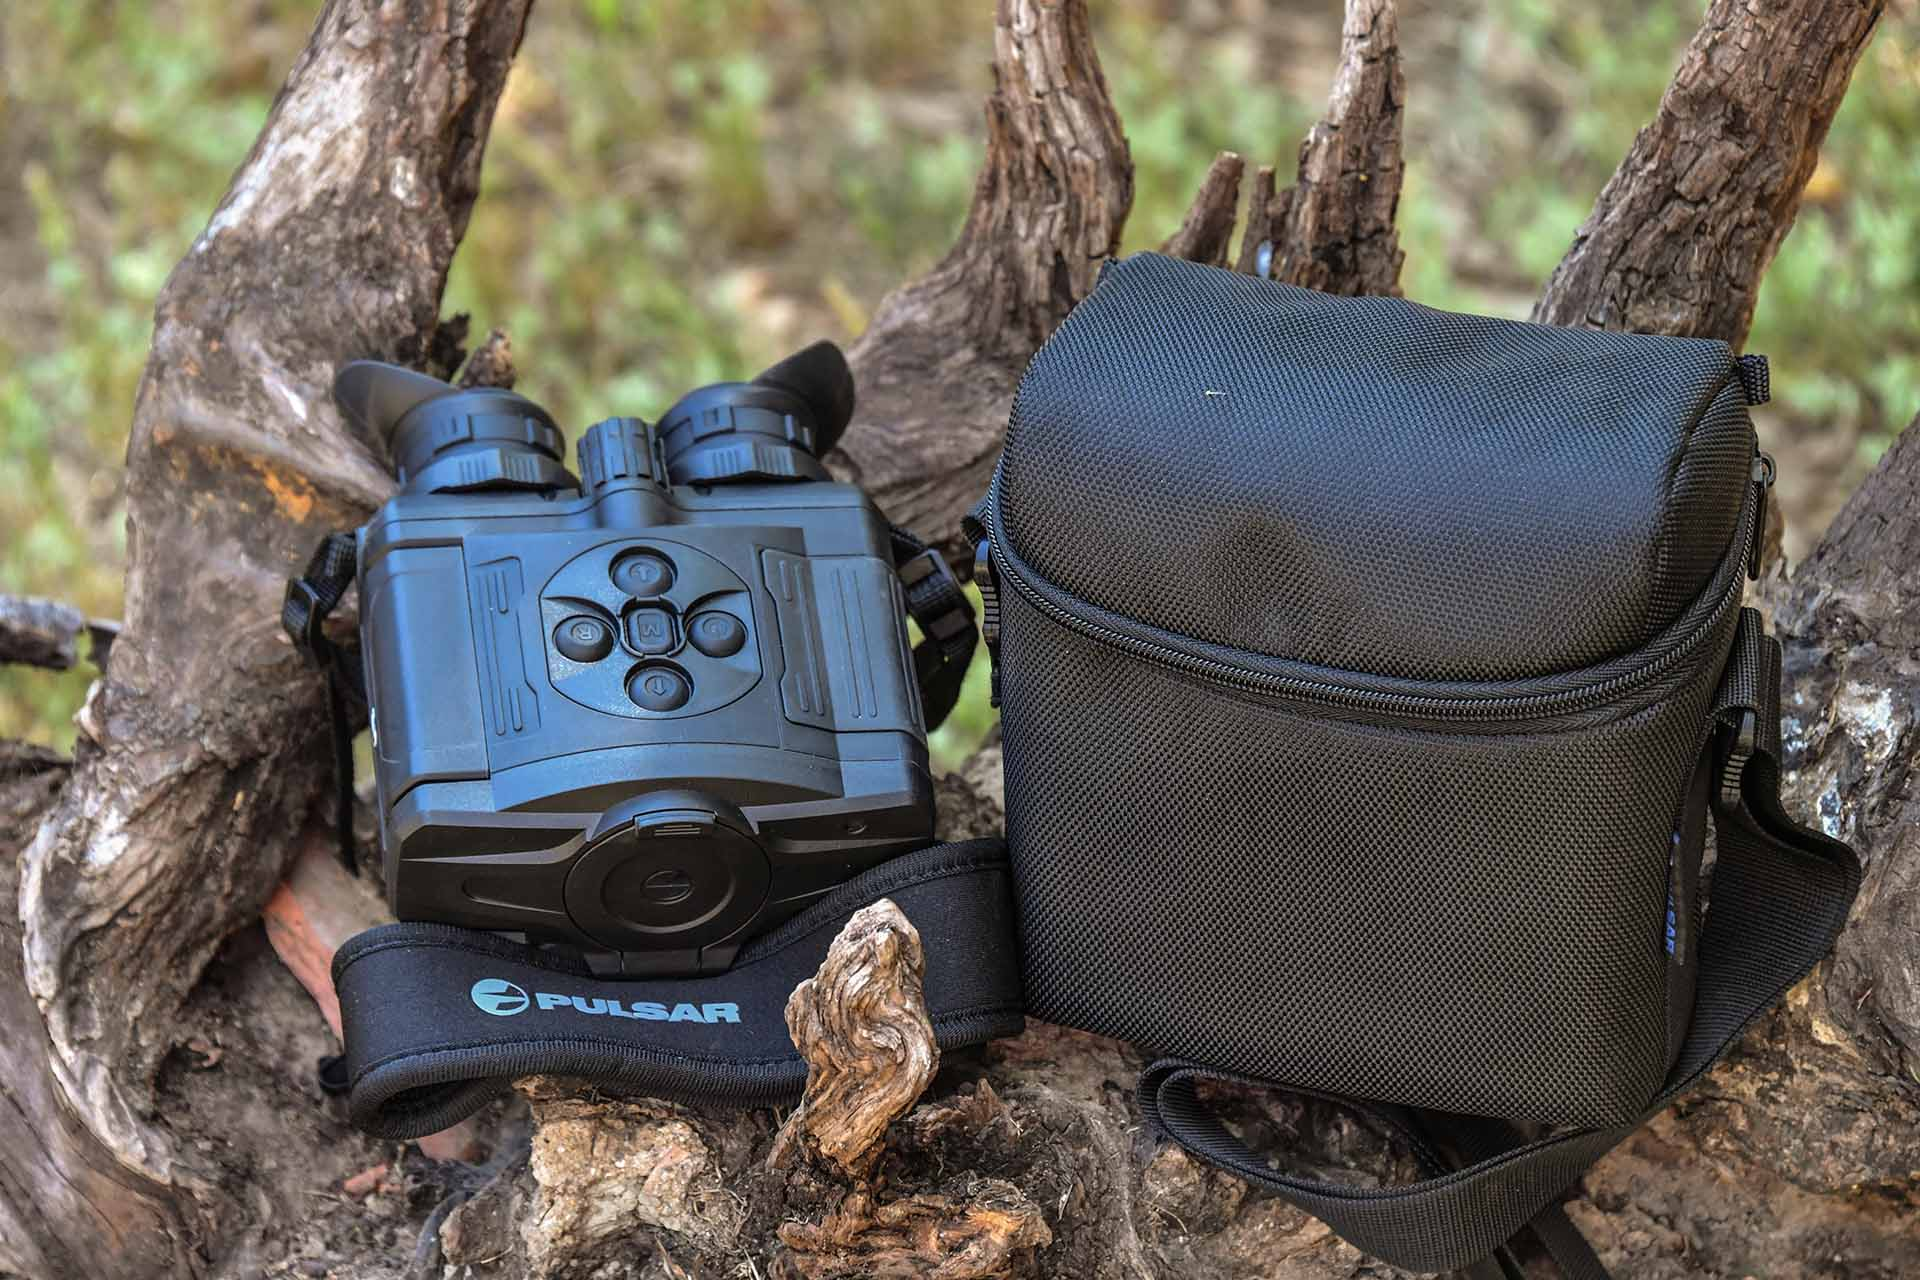 The XQ38 Pulsar Accolade thermal binocular with its Cordura case